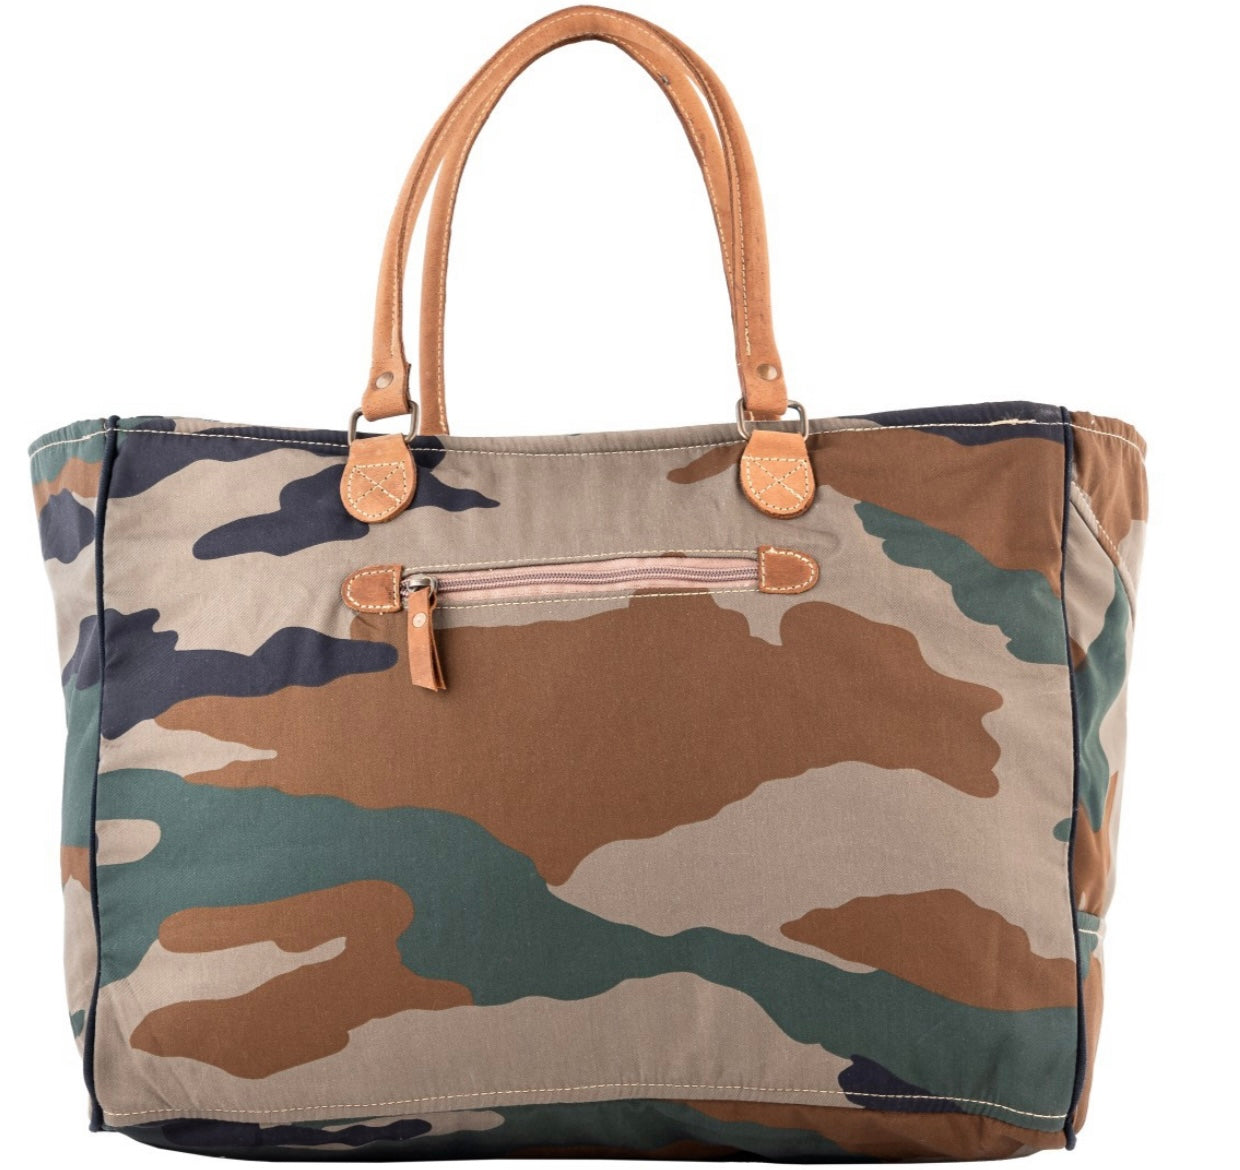 TRENDY CAMOUFLAGE WEEKENDER BAG - The Wall Kids, Inc.